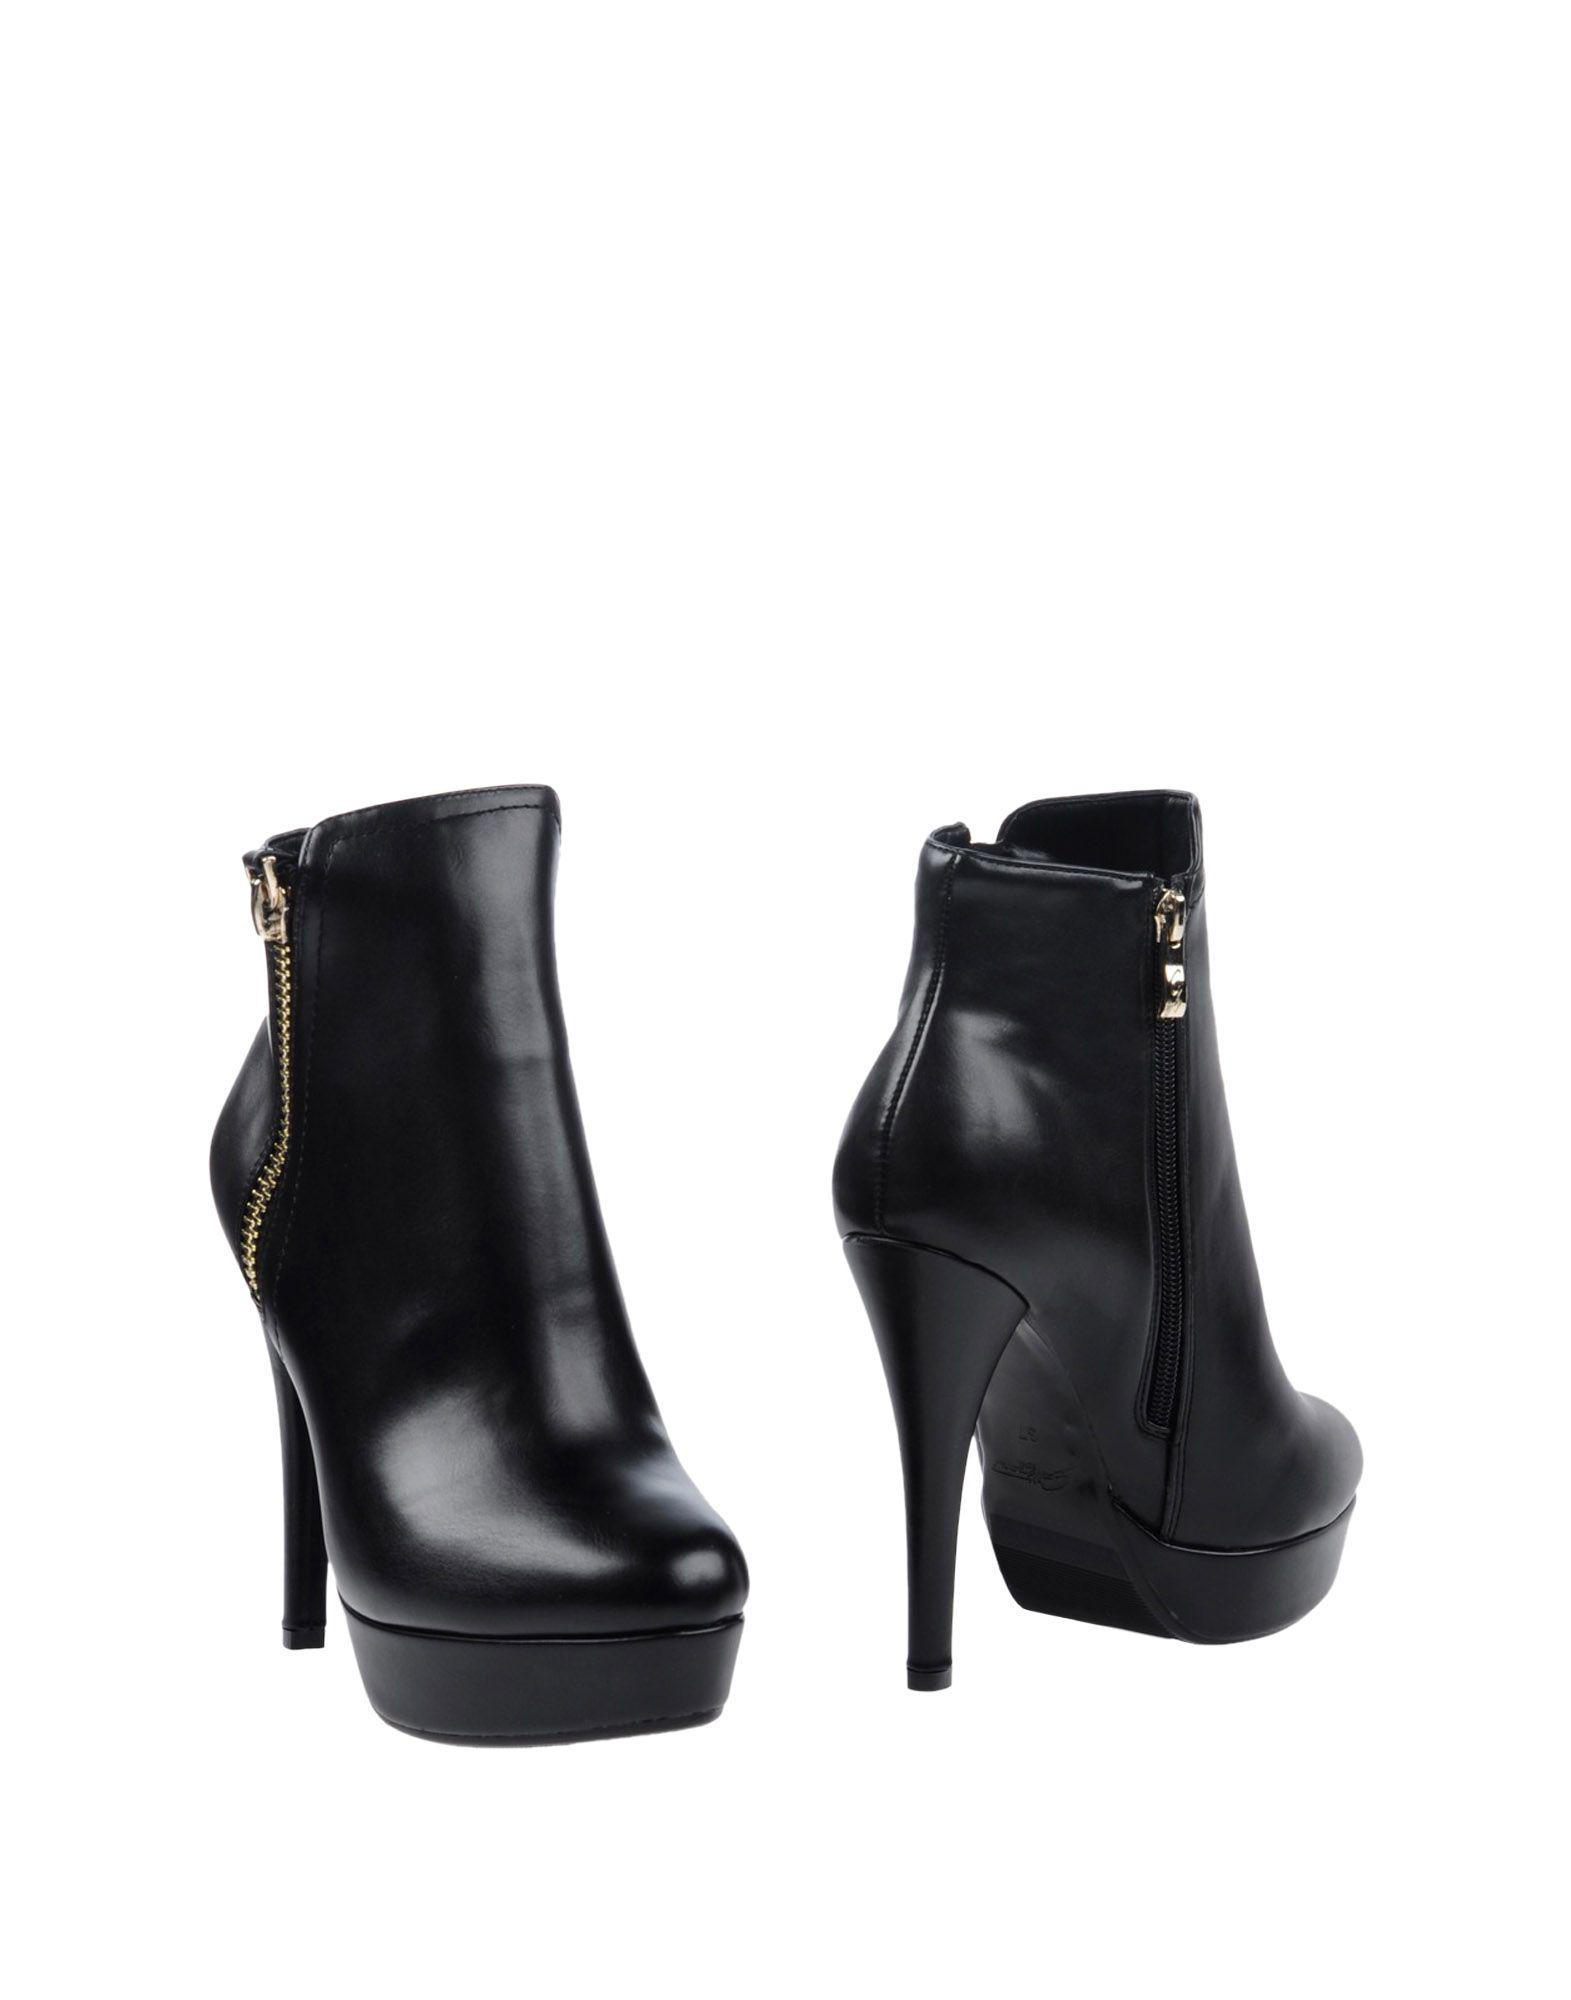 FOOTWEAR - Ankle boots Gattinoni Sale Ebay Clearance For Nice Cheap Recommend View For Sale Wholesale Price z5S2NLfJ